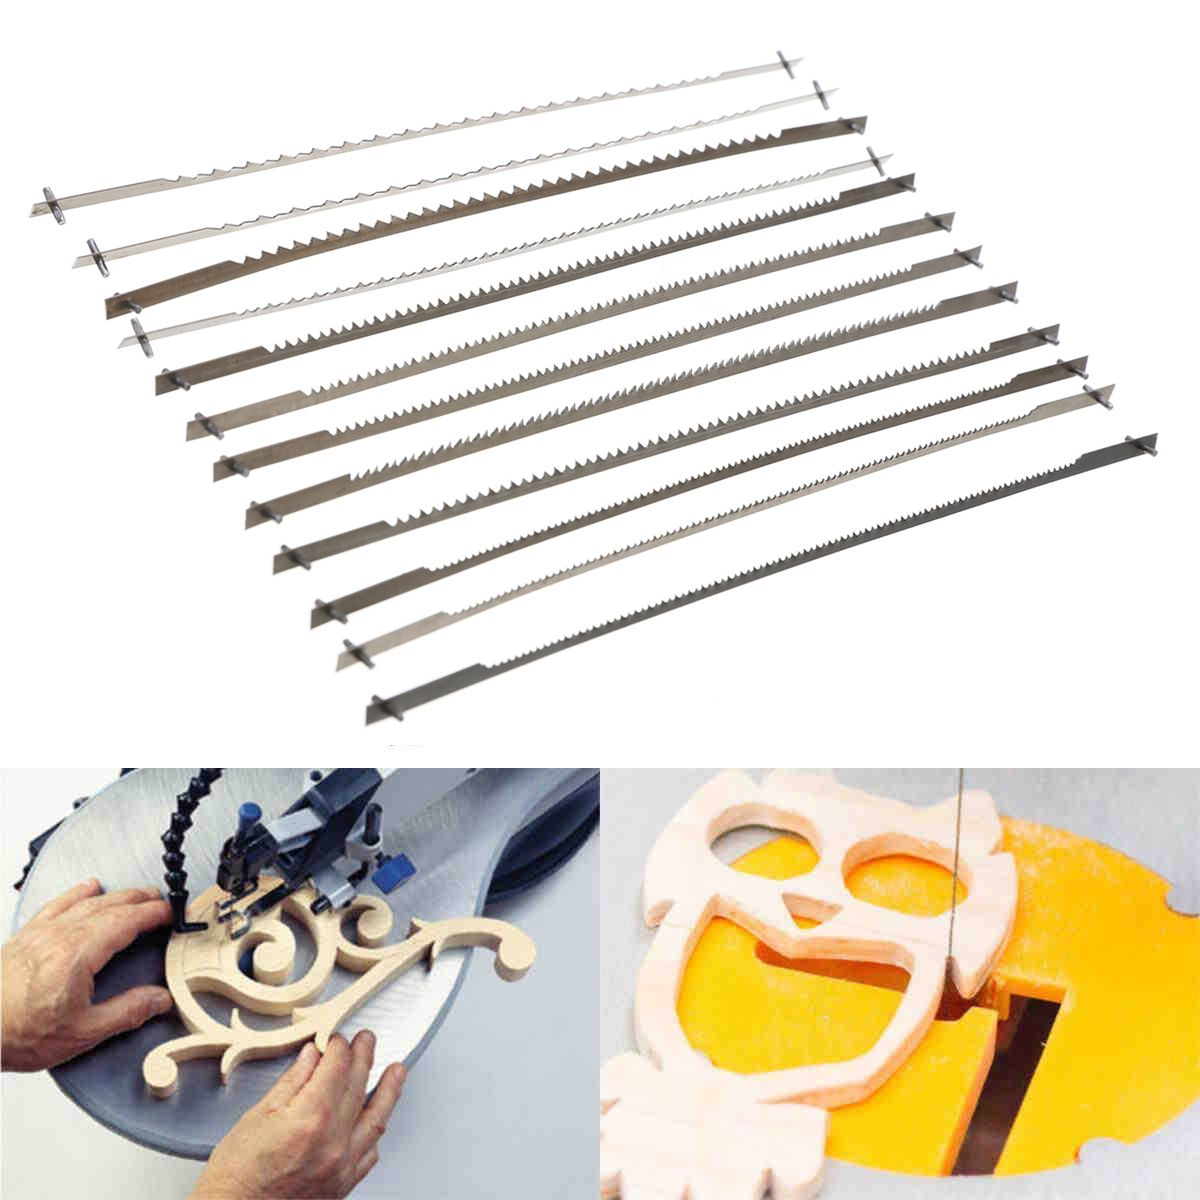 12pcs/set Pinned Scroll Saw Blades Woodworking Power Tools Accessories 127mm Black